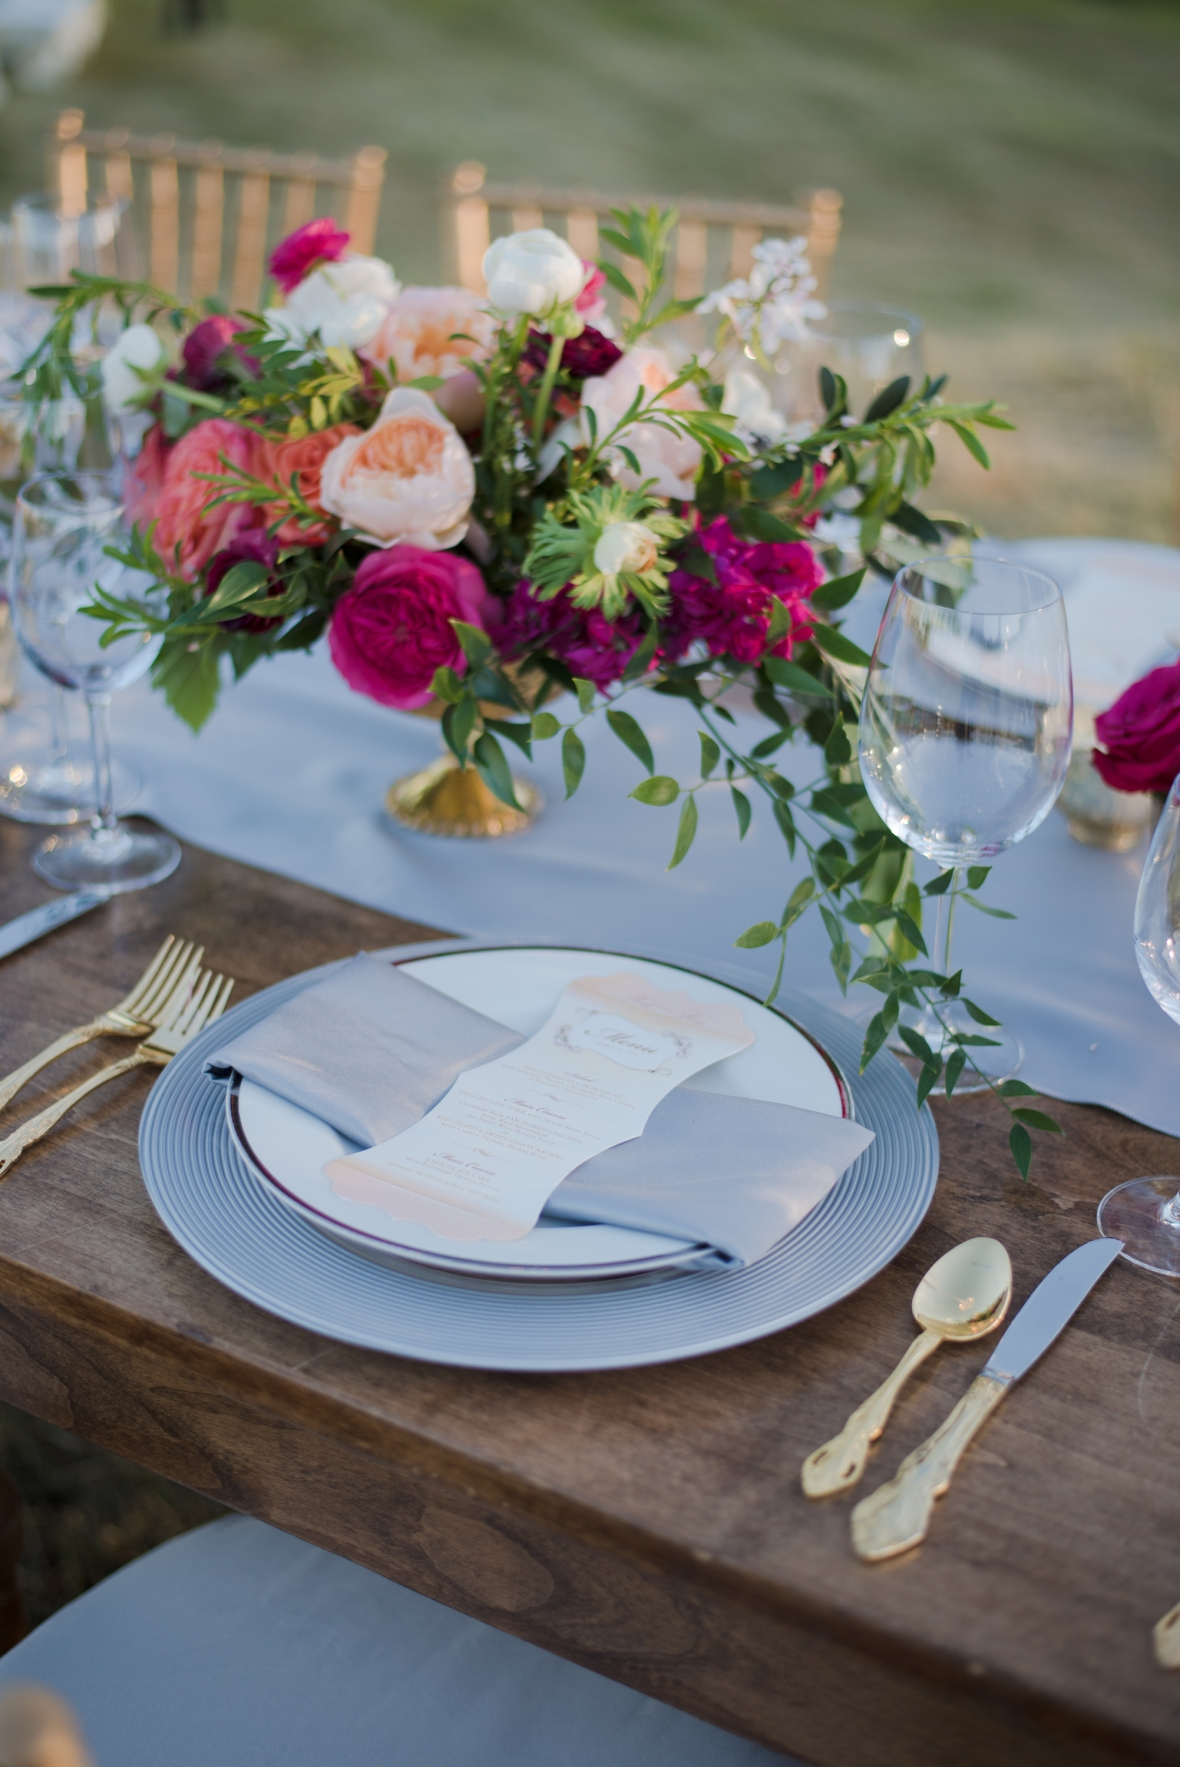 Quianna Marie Photography - Mt. Winery - The Meadow Bridal Event-72